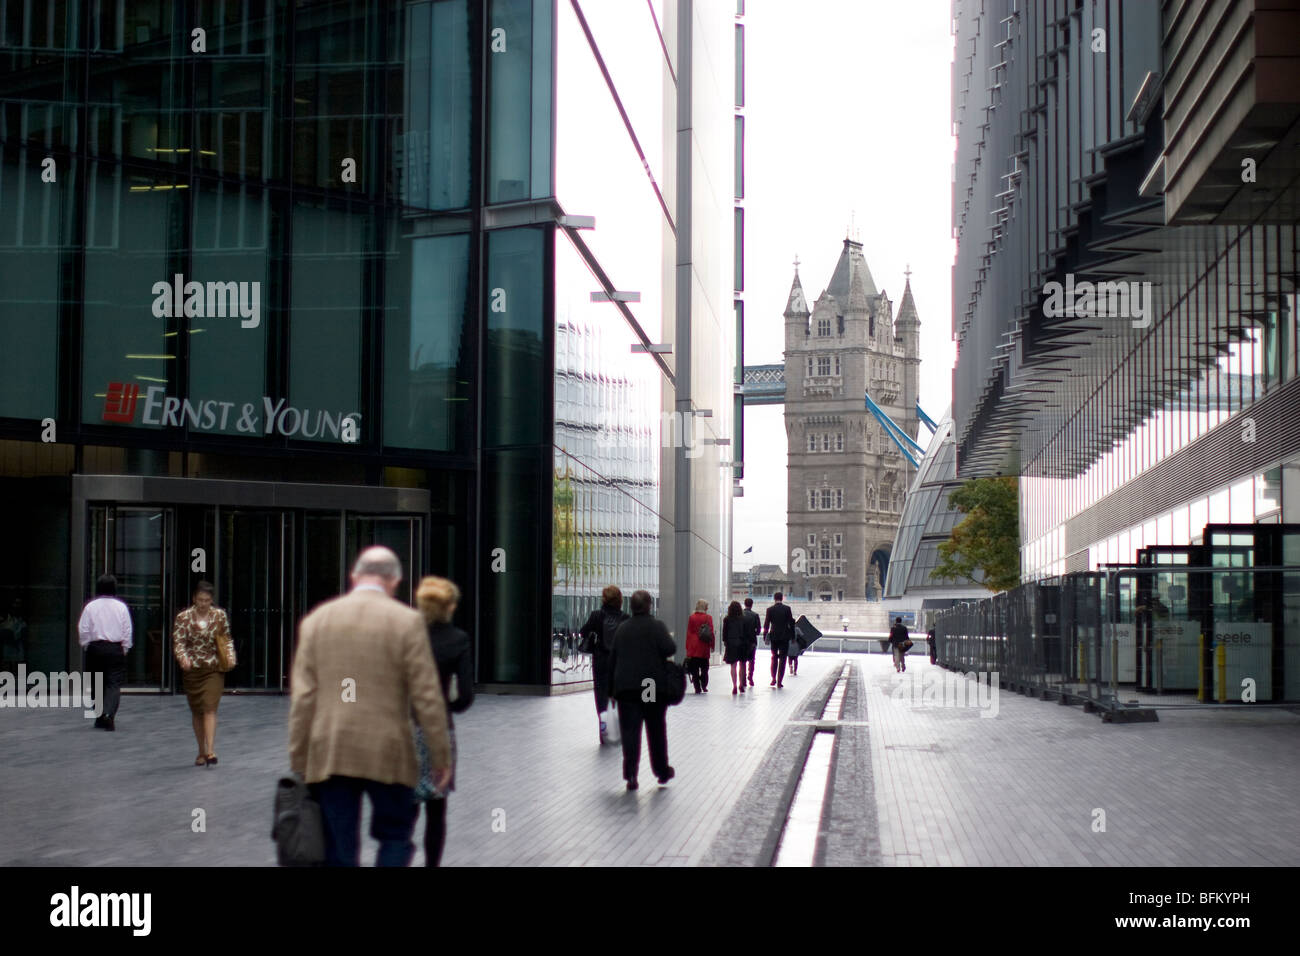 ernst and young, more london place, with tower bridge in background - Stock Image